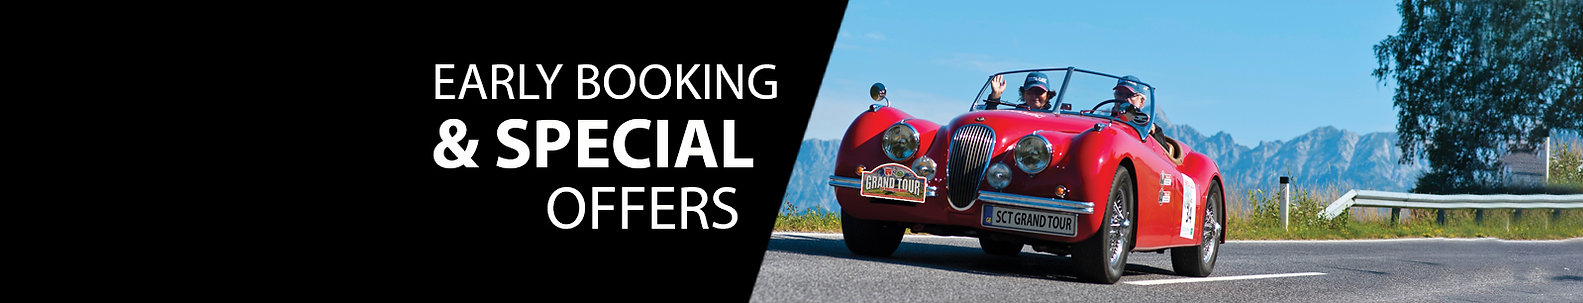 Early Booking & Special offers Web heade